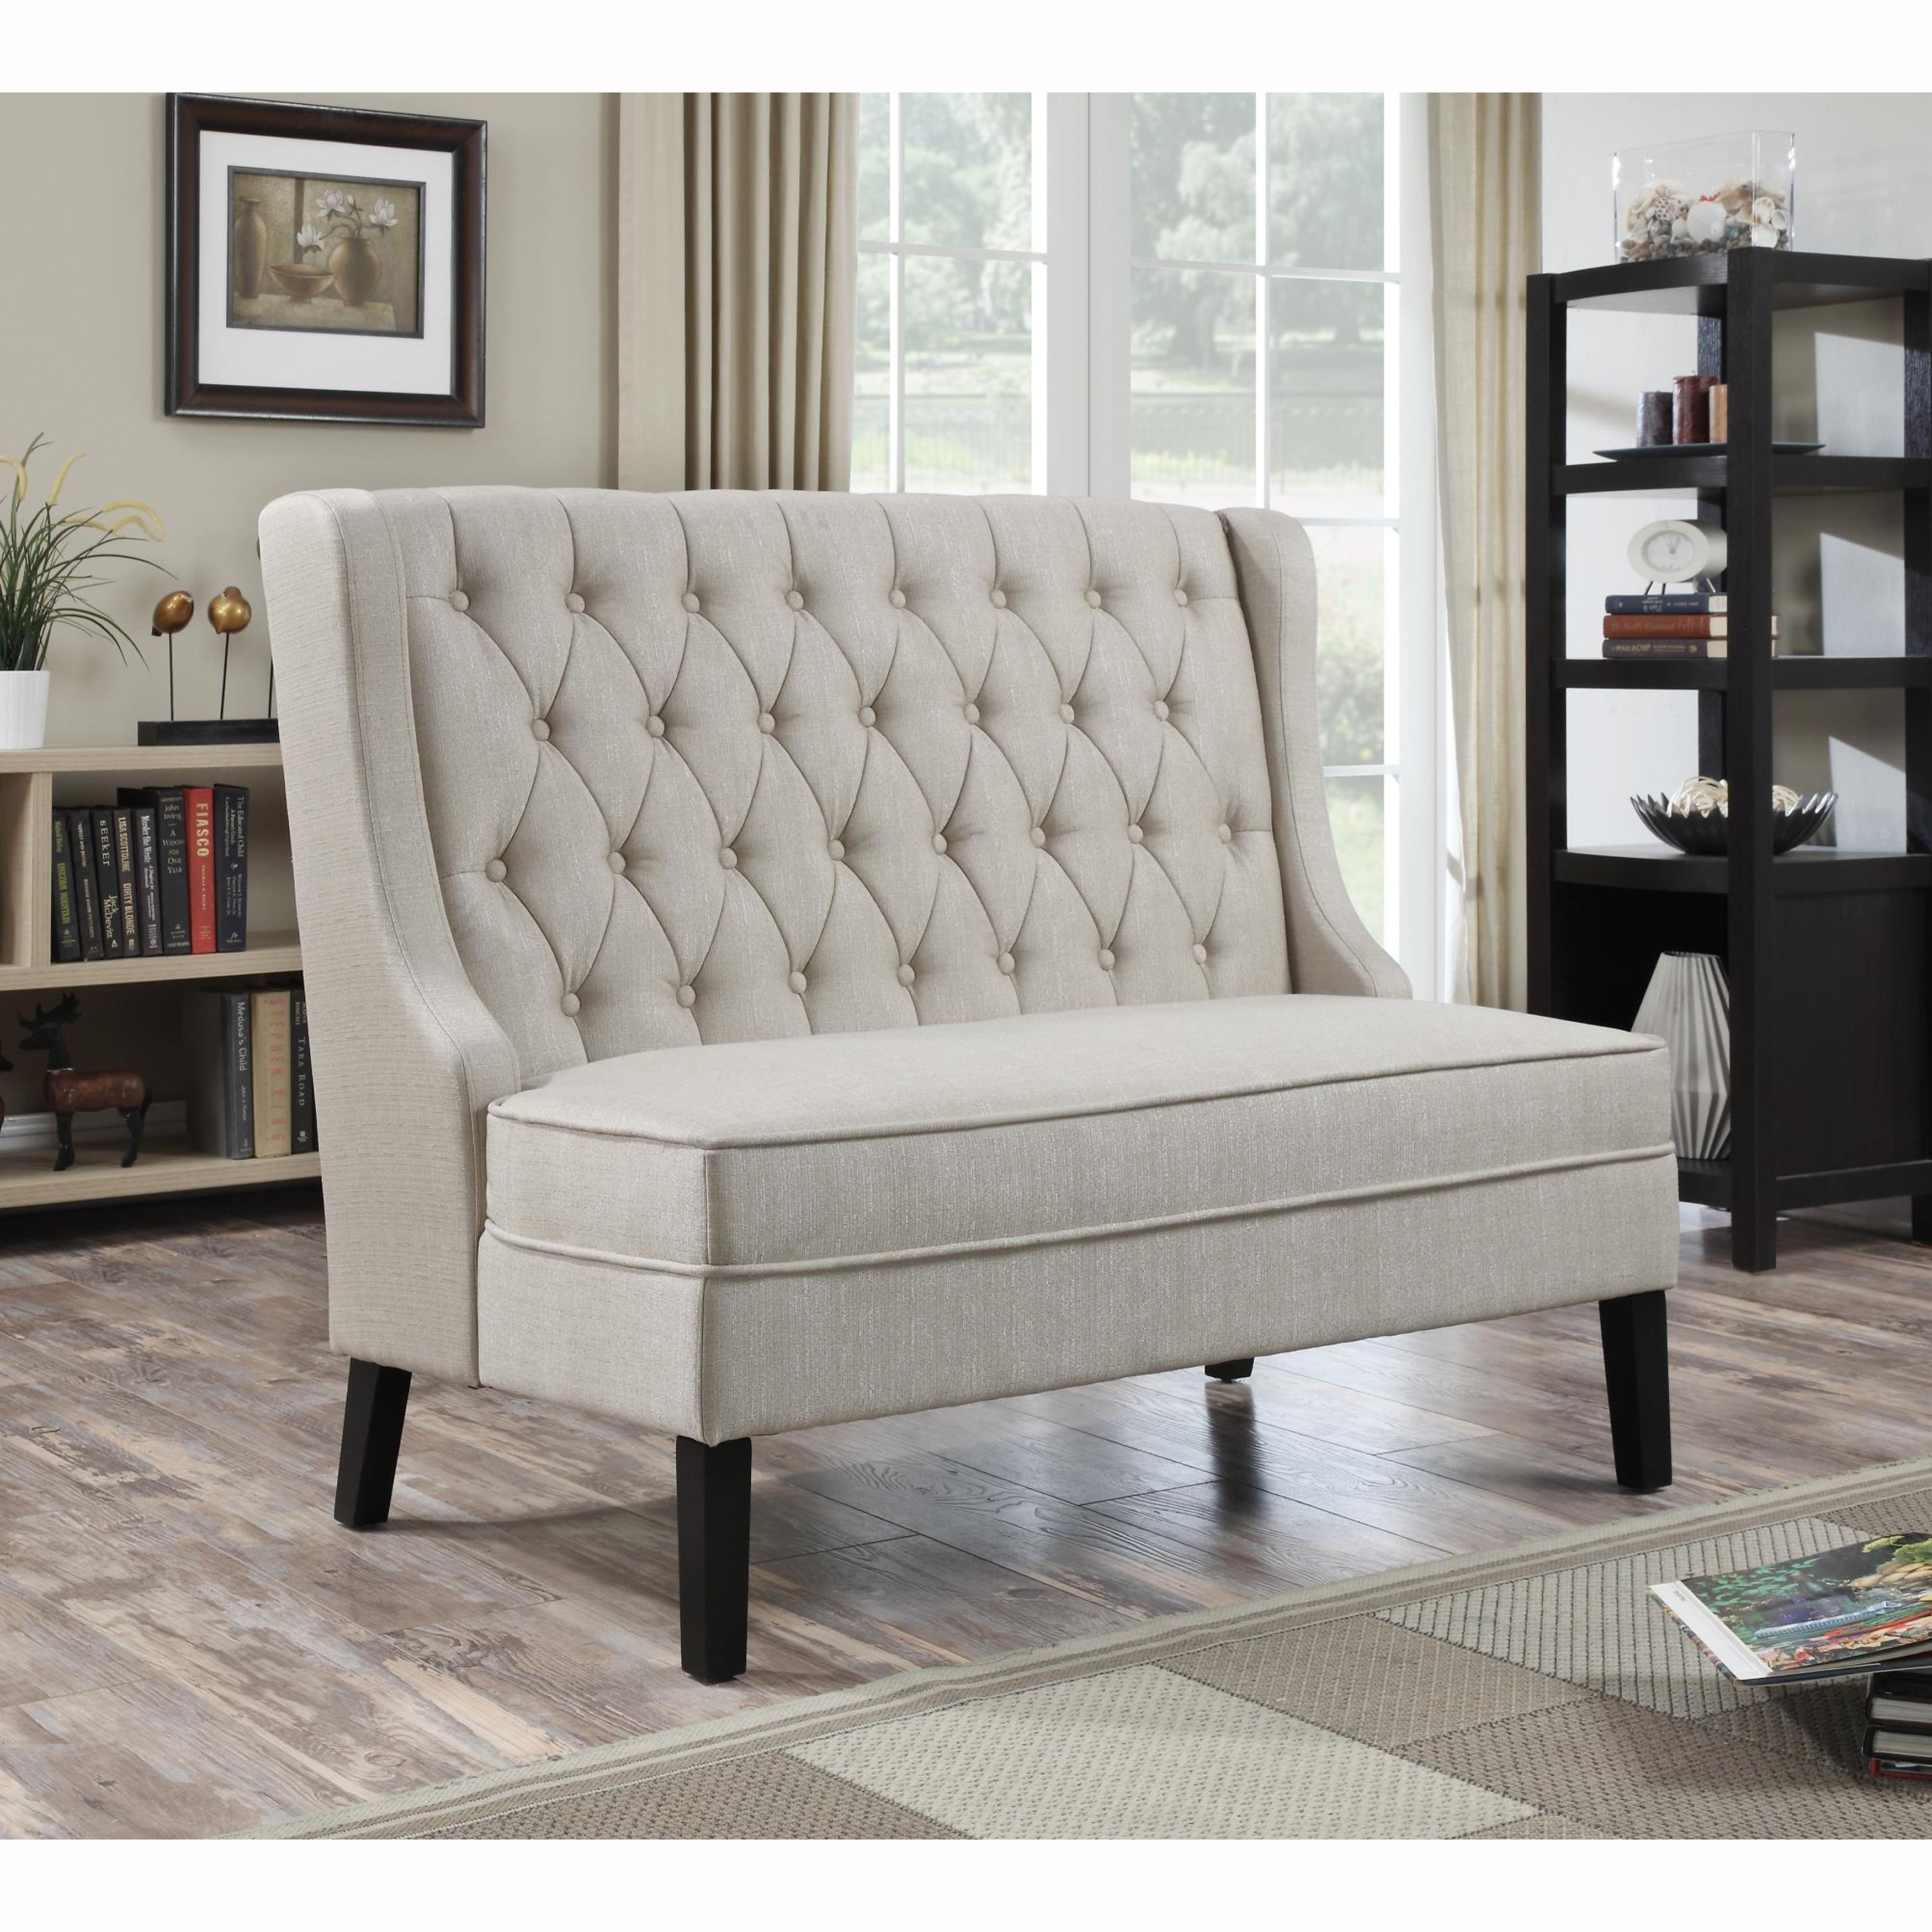 Linen Button Tufted Upholstered Banquette Bench Is